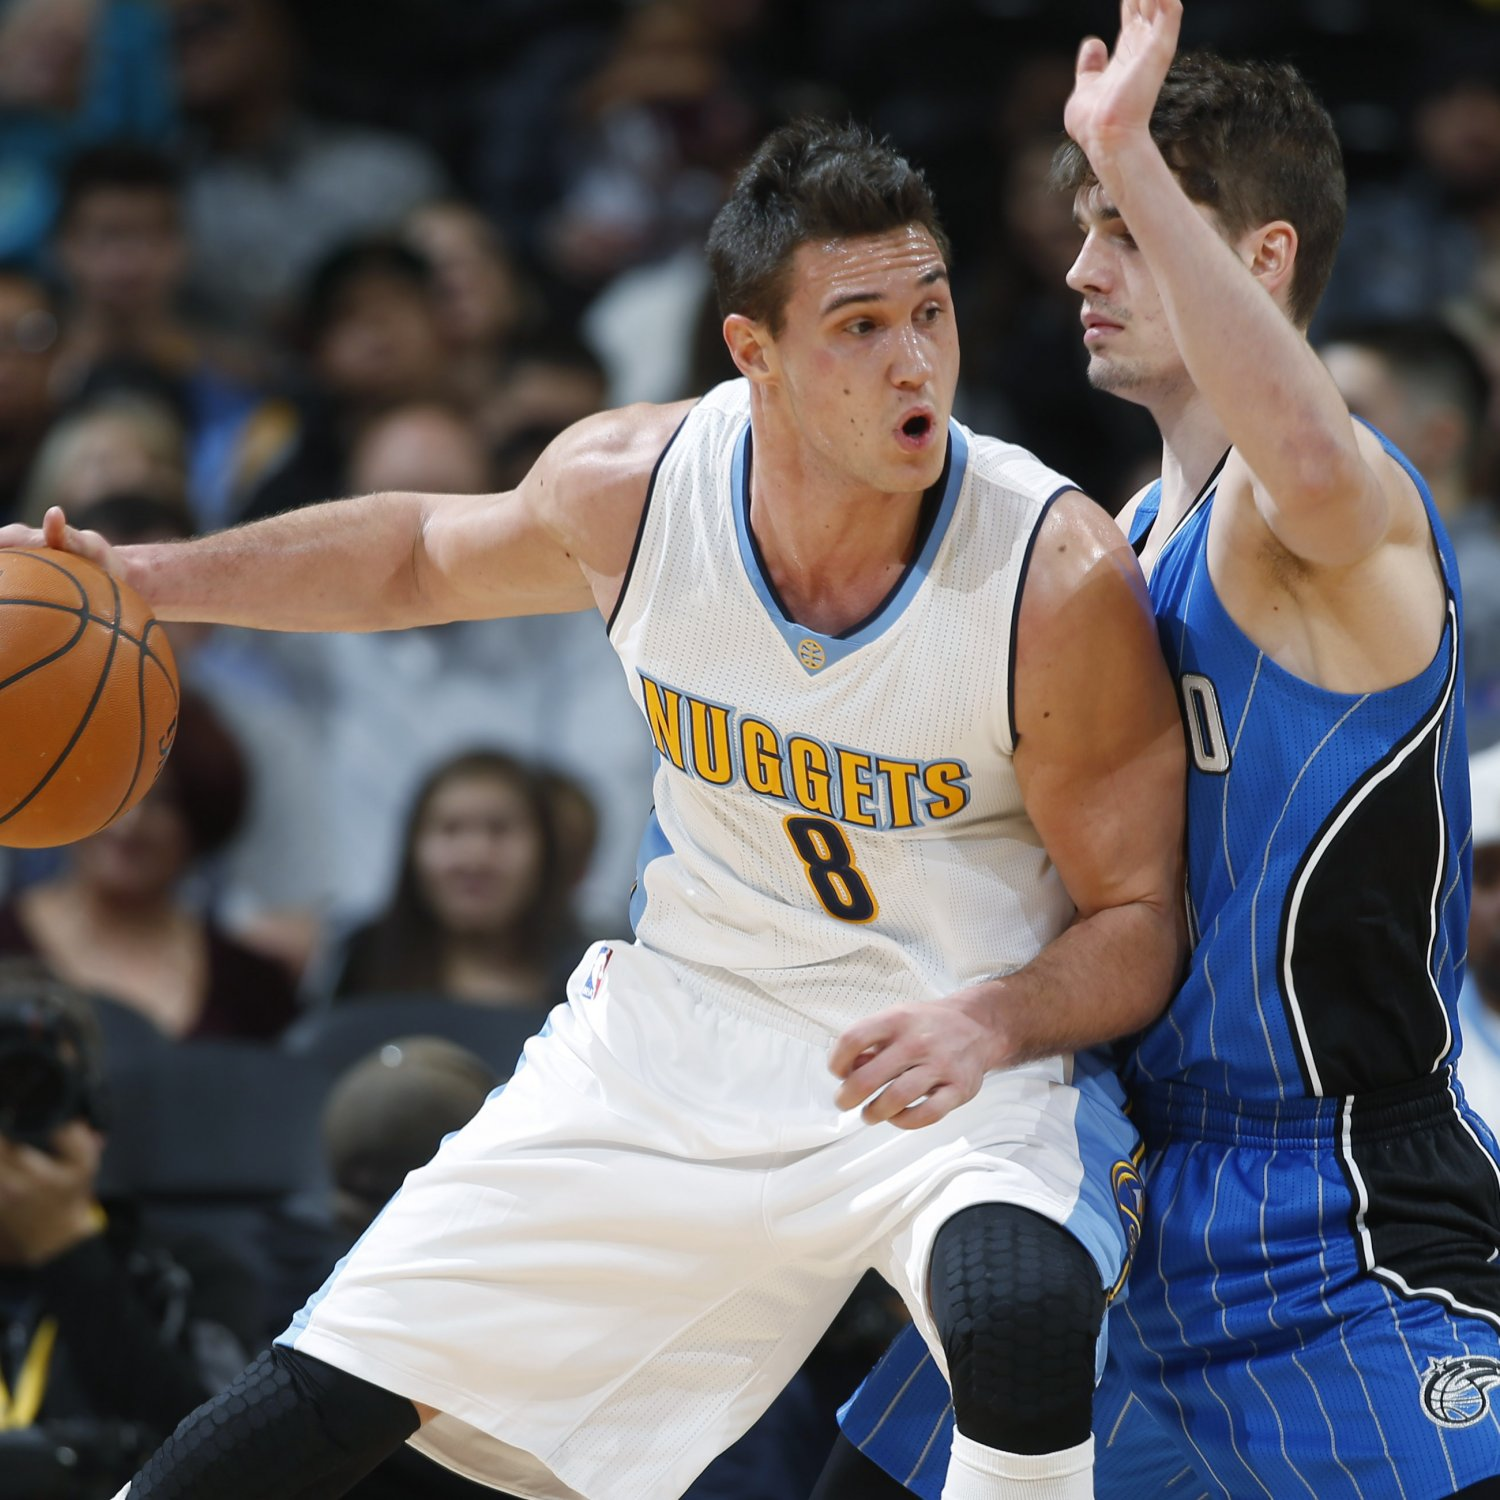 Nuggets Injury Report: Danilo Gallinari Injury: Updates On Nuggets Star's Ankle